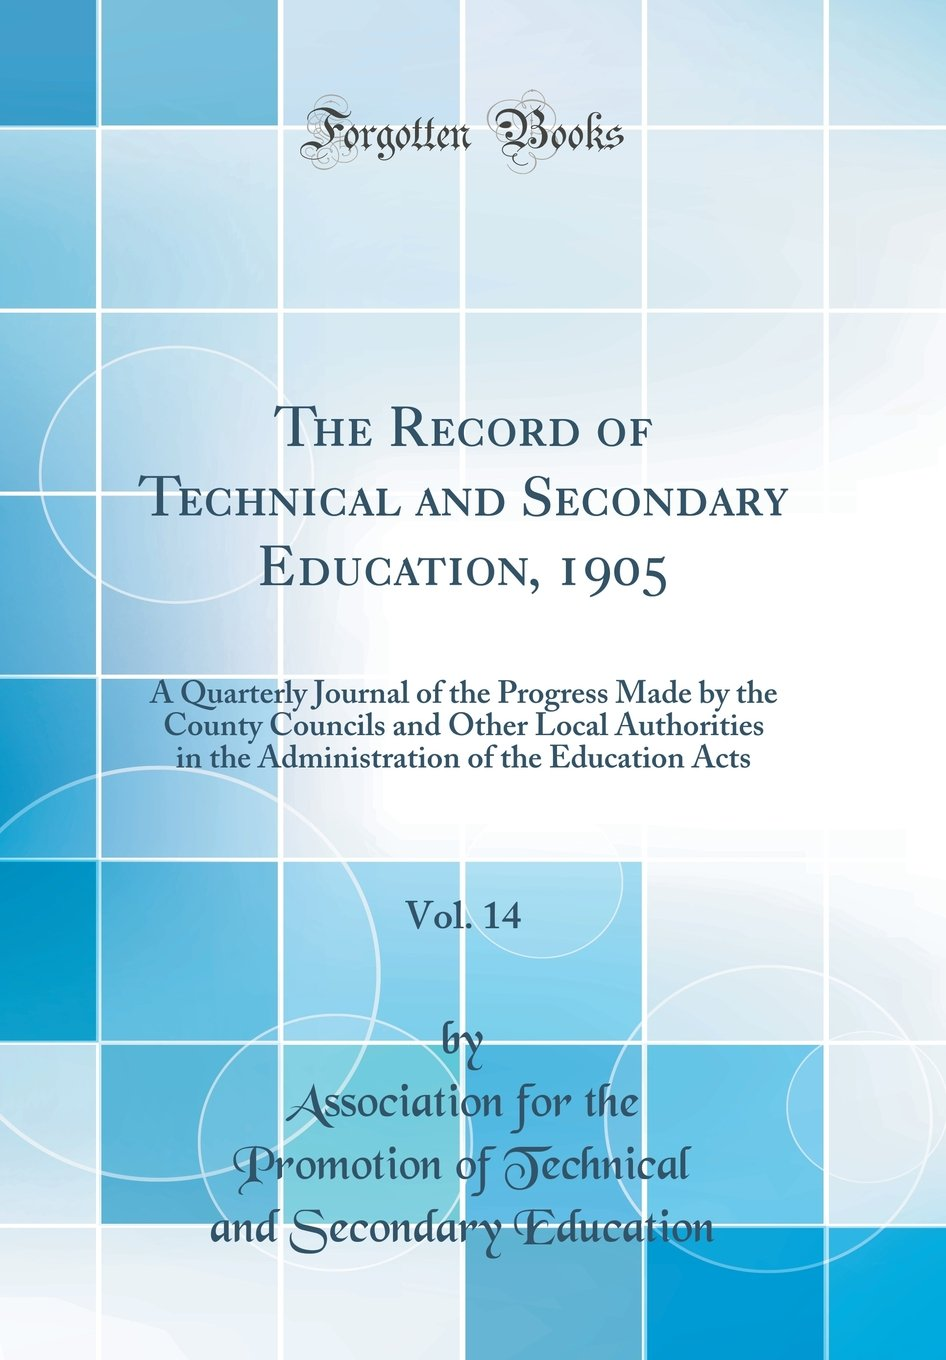 The Record of Technical and Secondary Education, 1905, Vol. 14: A Quarterly Journal of the Progress Made by the County Councils and Other Local ... of the Education Acts (Classic Reprint) pdf